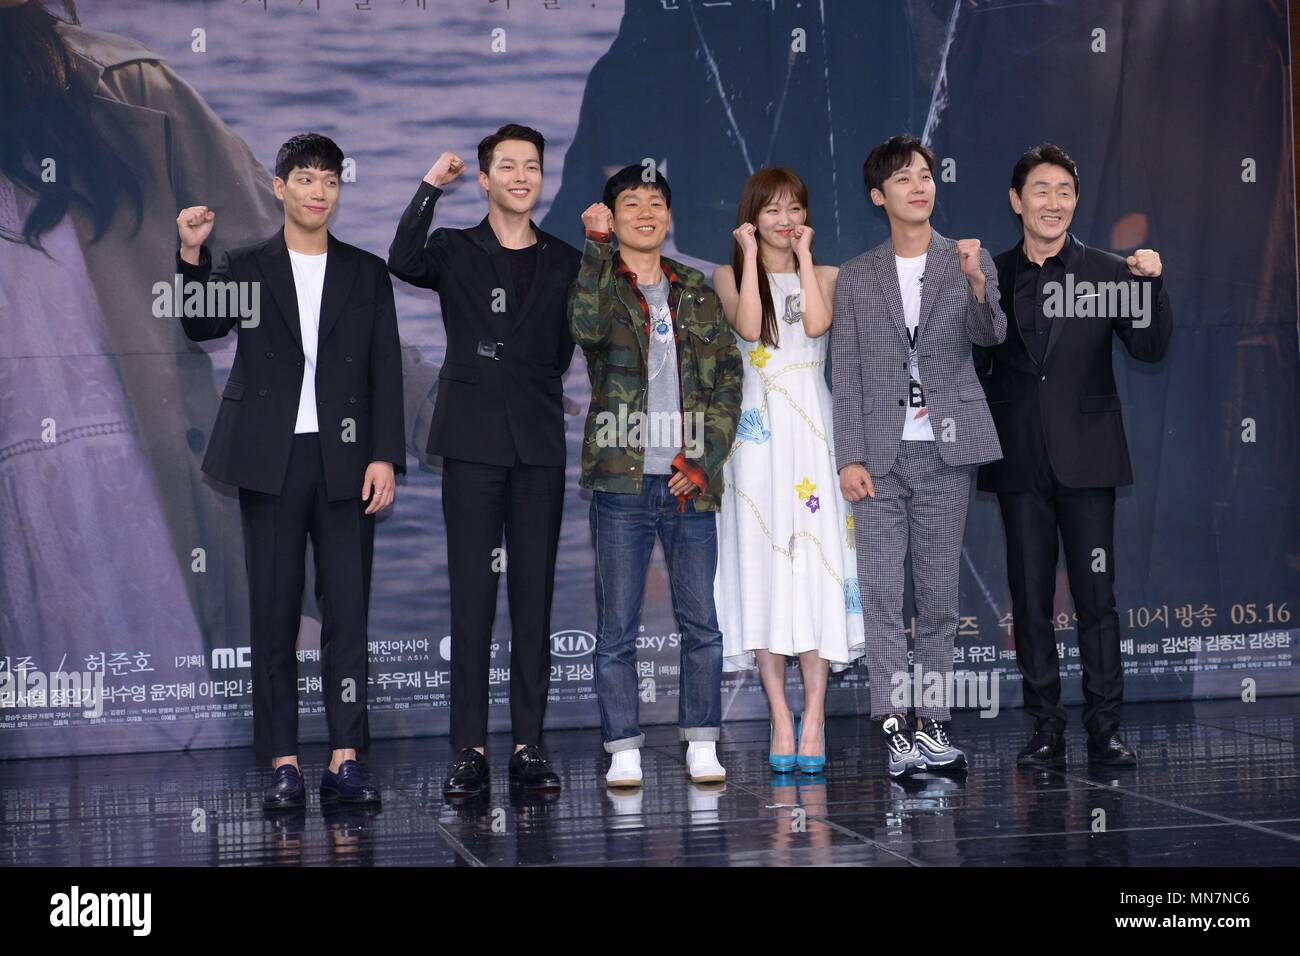 Seoul, Korea. 14th May, 2018. Jang Gi Yong, Jin Ki-joo, Heo Joon-ho, Yoon Jong-hoon, Kim Kyung Nam etc. attend the production conference of MBC TV series 'Come to Hold Me' in Seoul, Korea on 14th May, 2018.(China and Korea Rights Out) Credit: TopPhoto/Alamy Live News Stock Photo